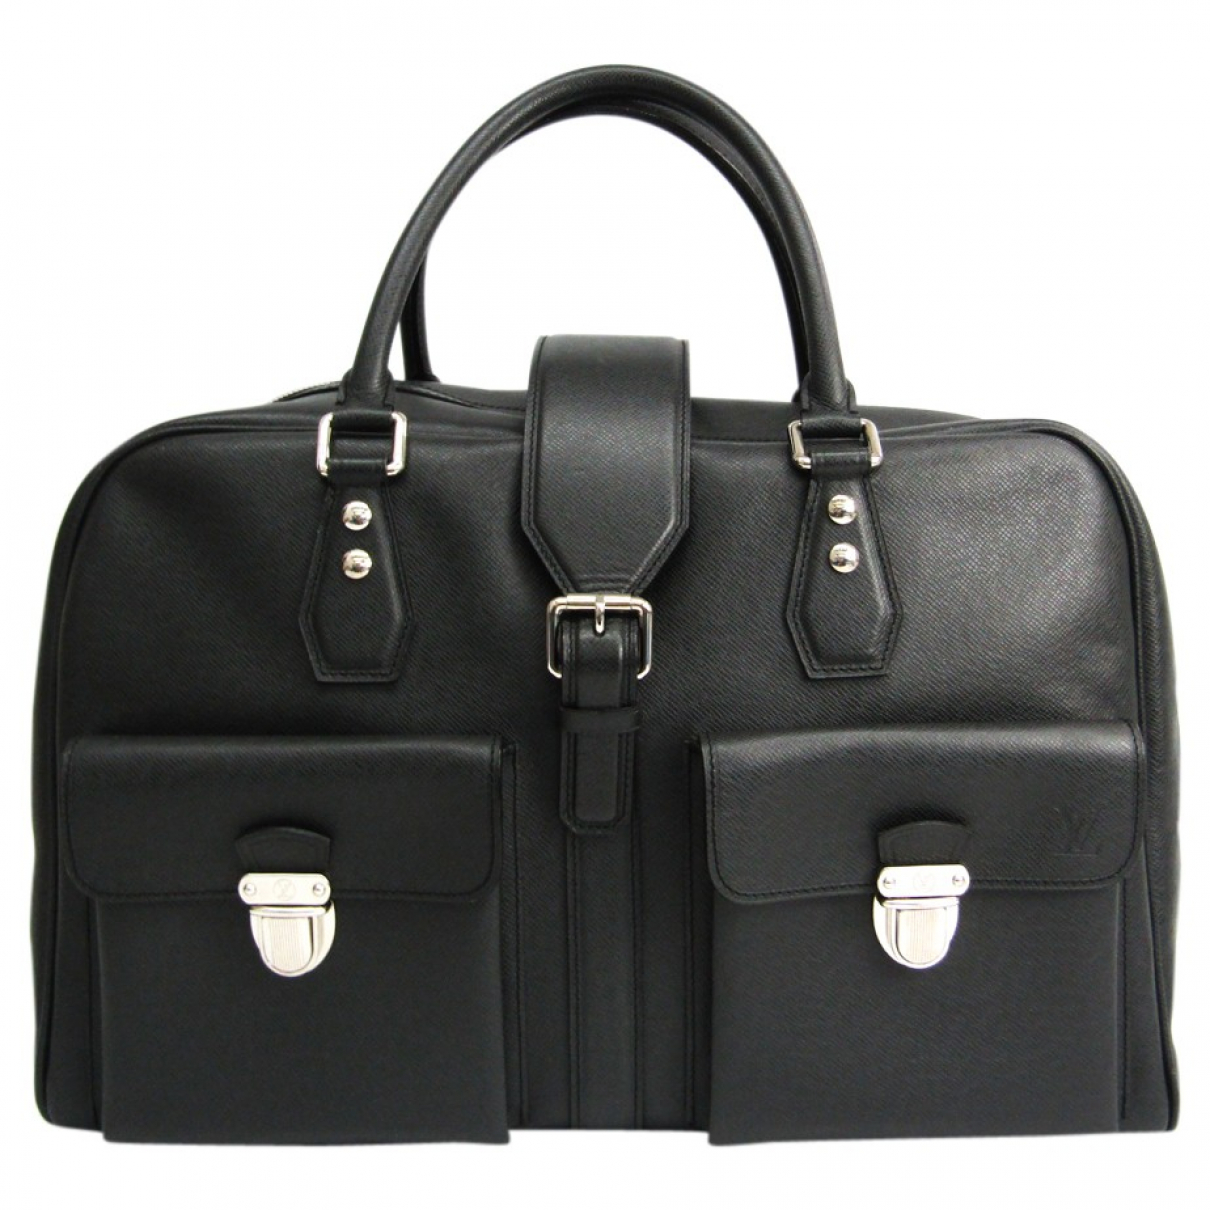 Louis Vuitton N Anthracite Leather Travel bag for Women N